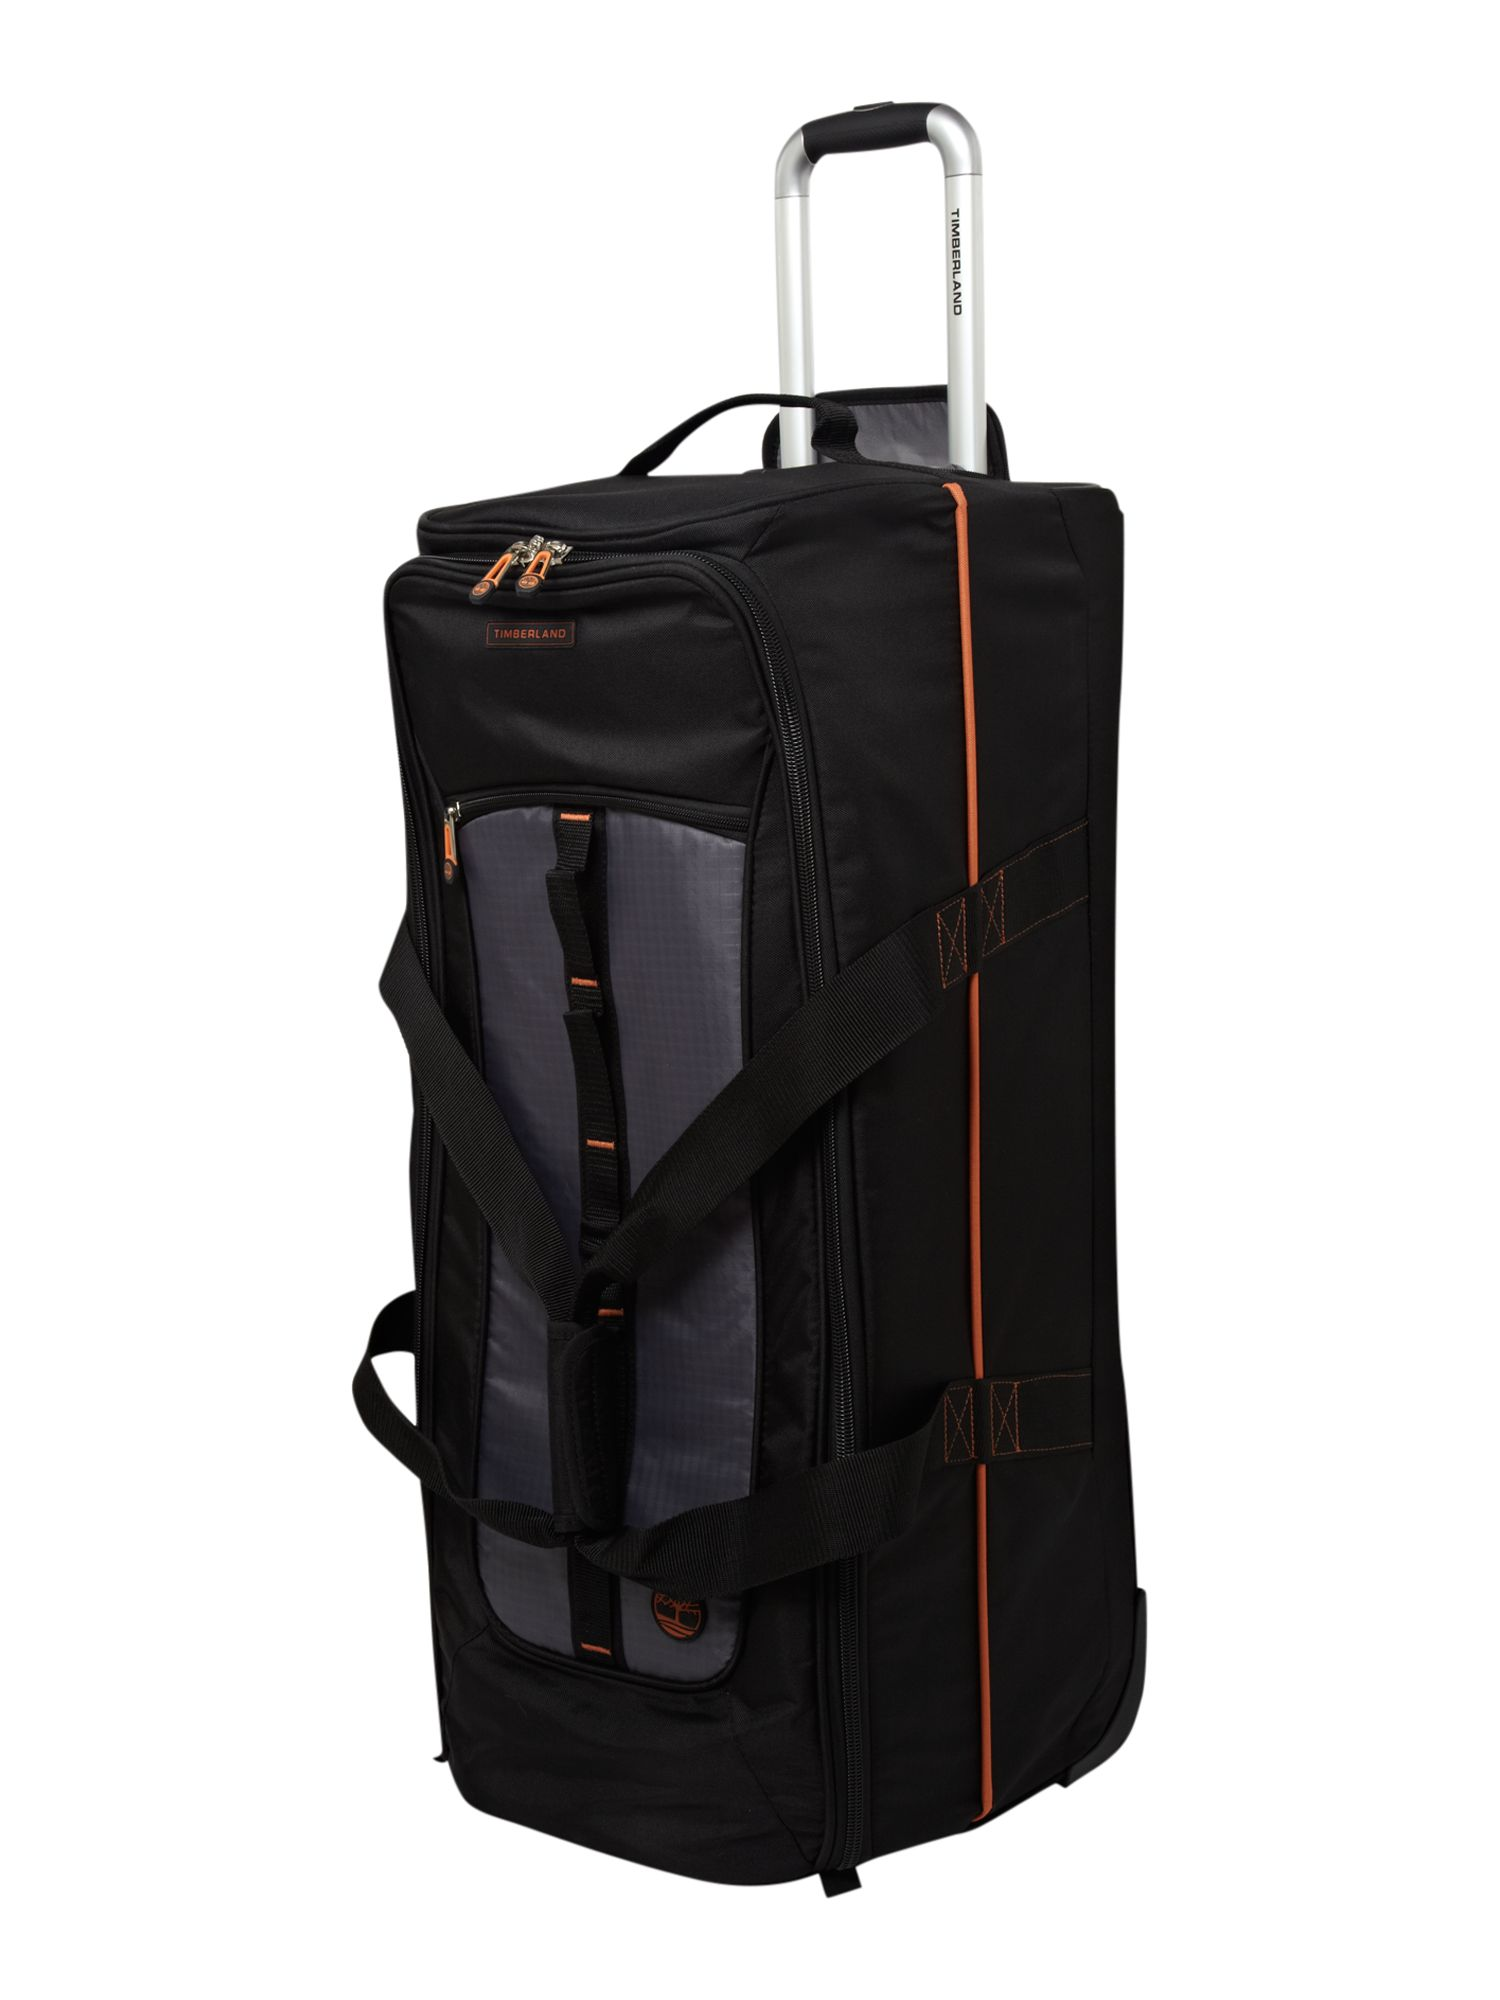 Jay Peak 32 Wheeled Duffle Black